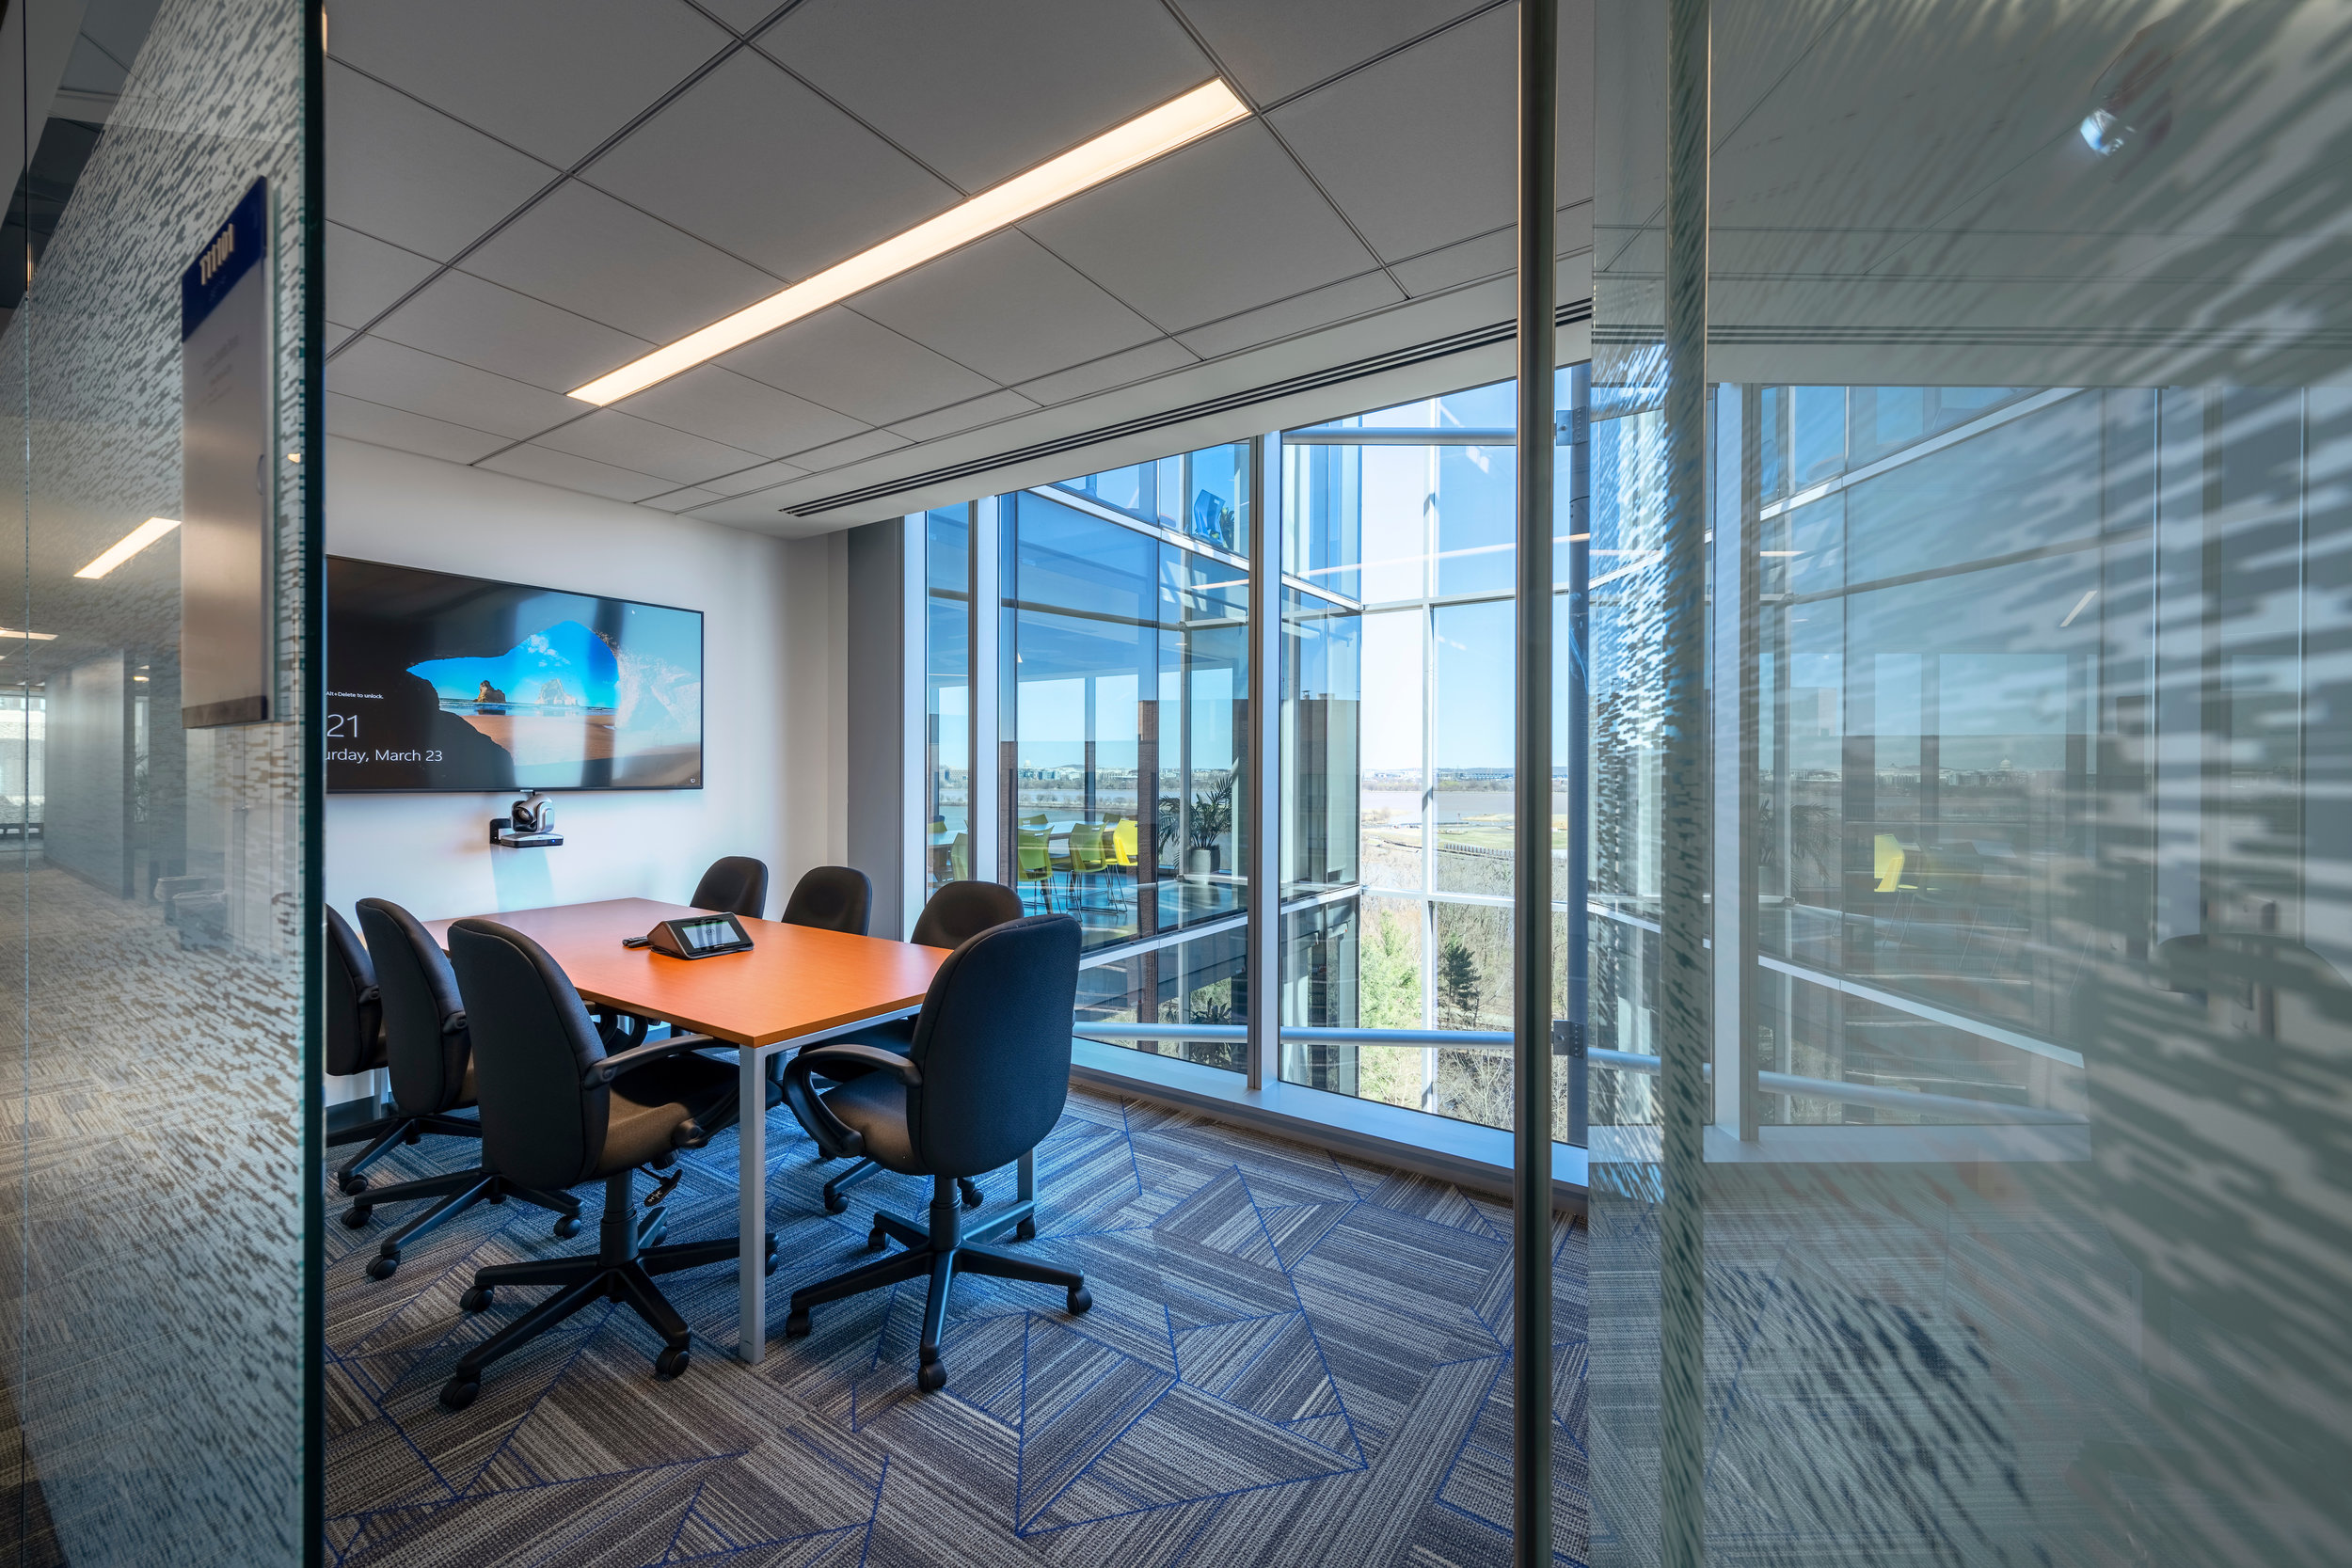 American Institutes for Research - Conference Room